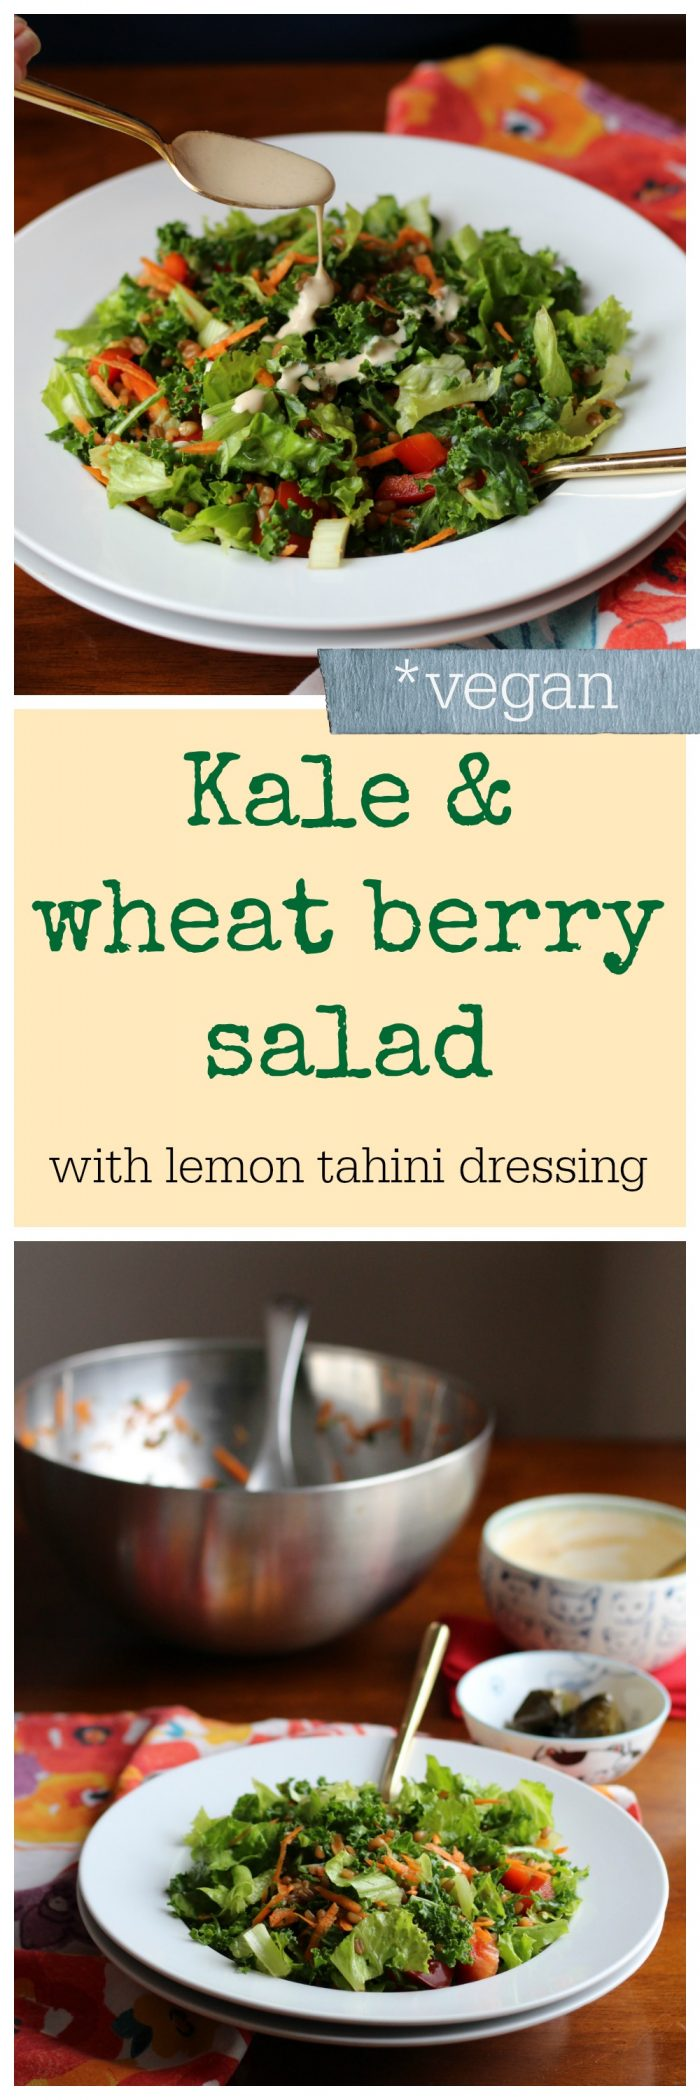 This hearty vegan salad with kale & wheat berries is great in cold weather months. It's topped with a drizzle of lemon tahini dressing. | cadryskitchen.com